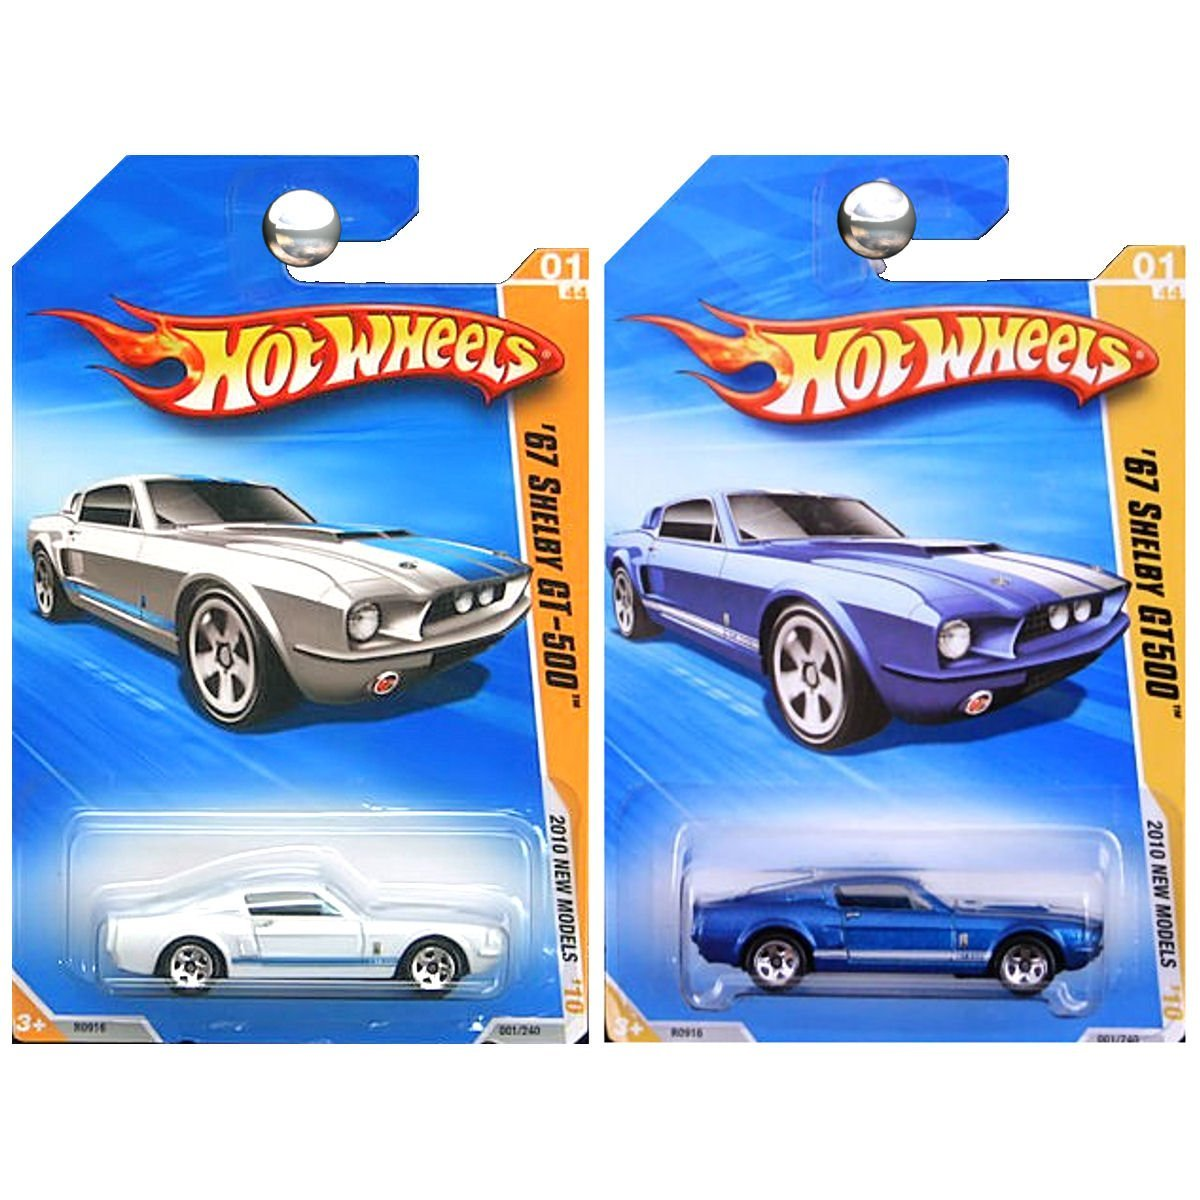 Hot Wheels /'69 Ford Mustang 2007 New Models White